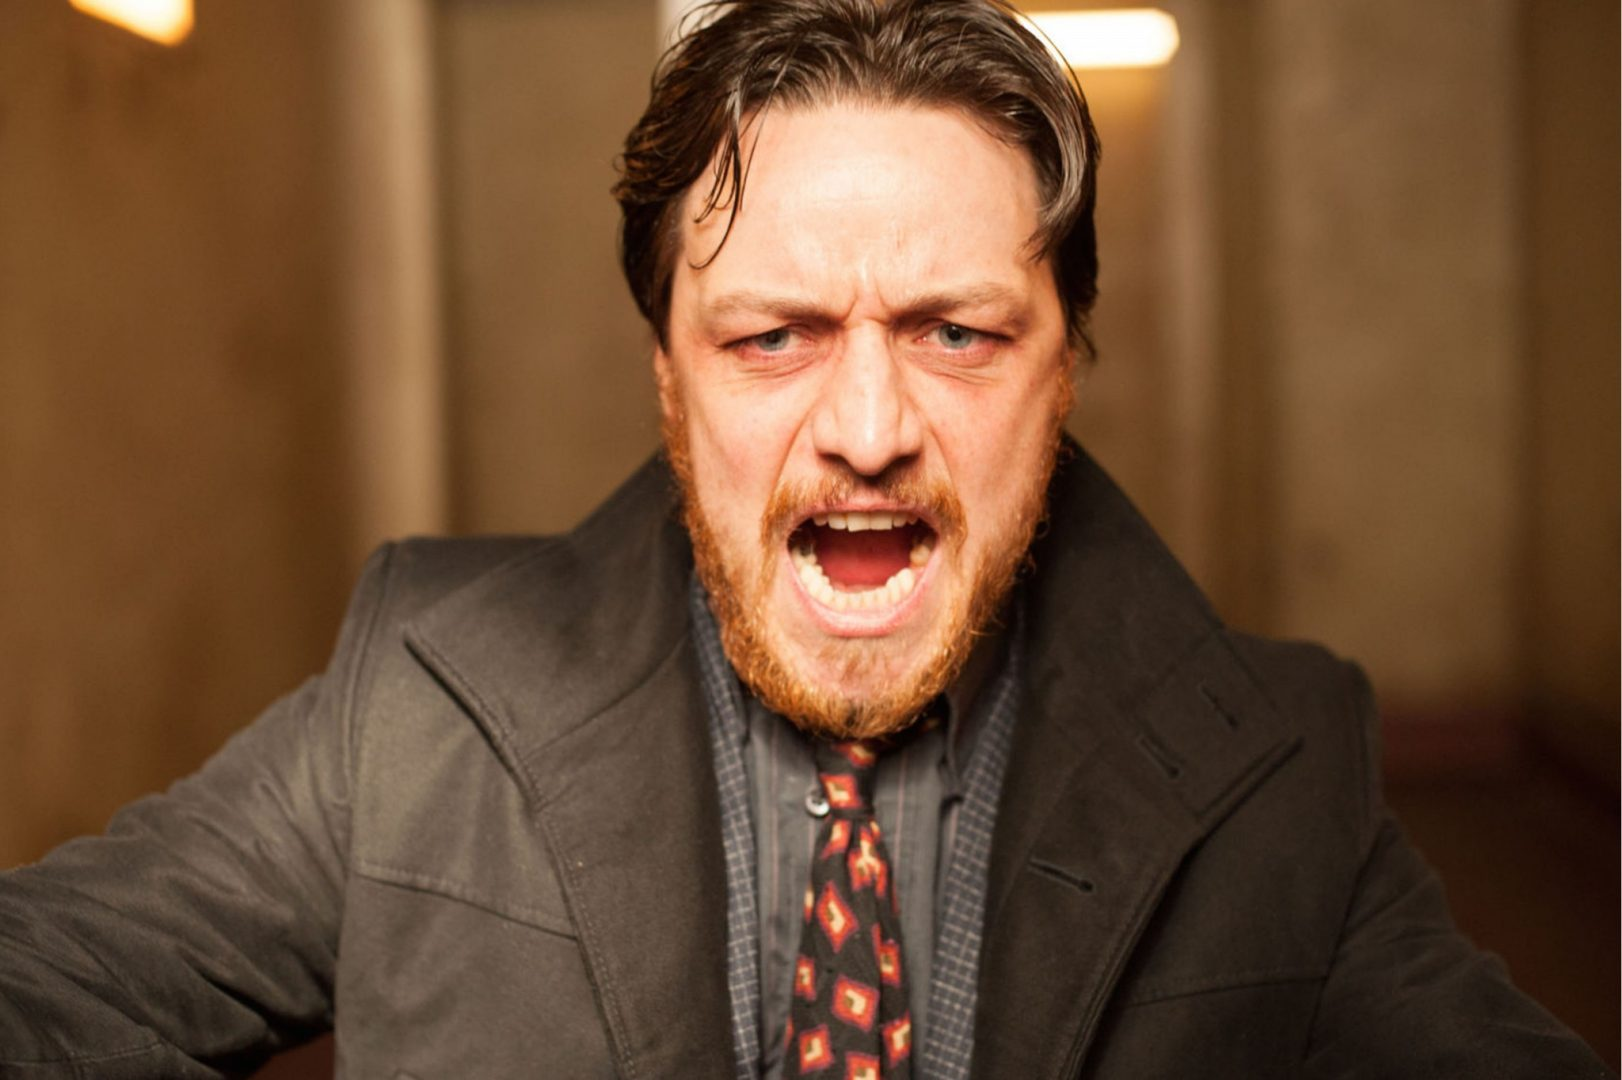 James McAvoy in Filth portrayed Scotland's dark side